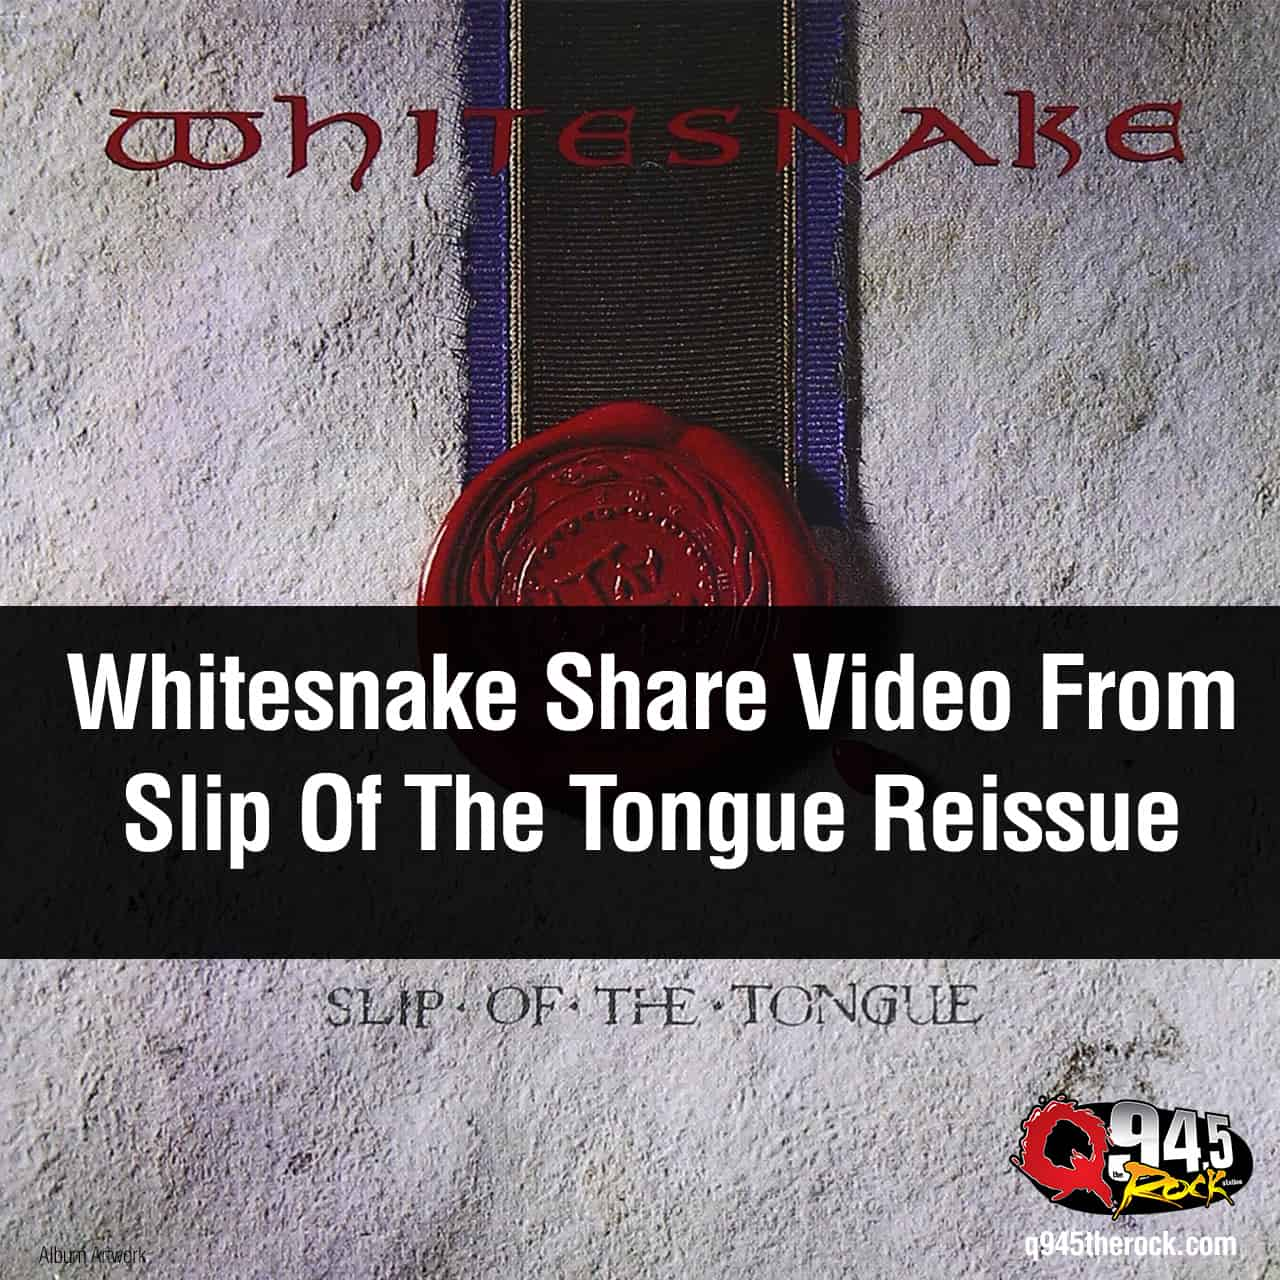 Whitesnake Share Video From Slip Of The Tongue Reissue